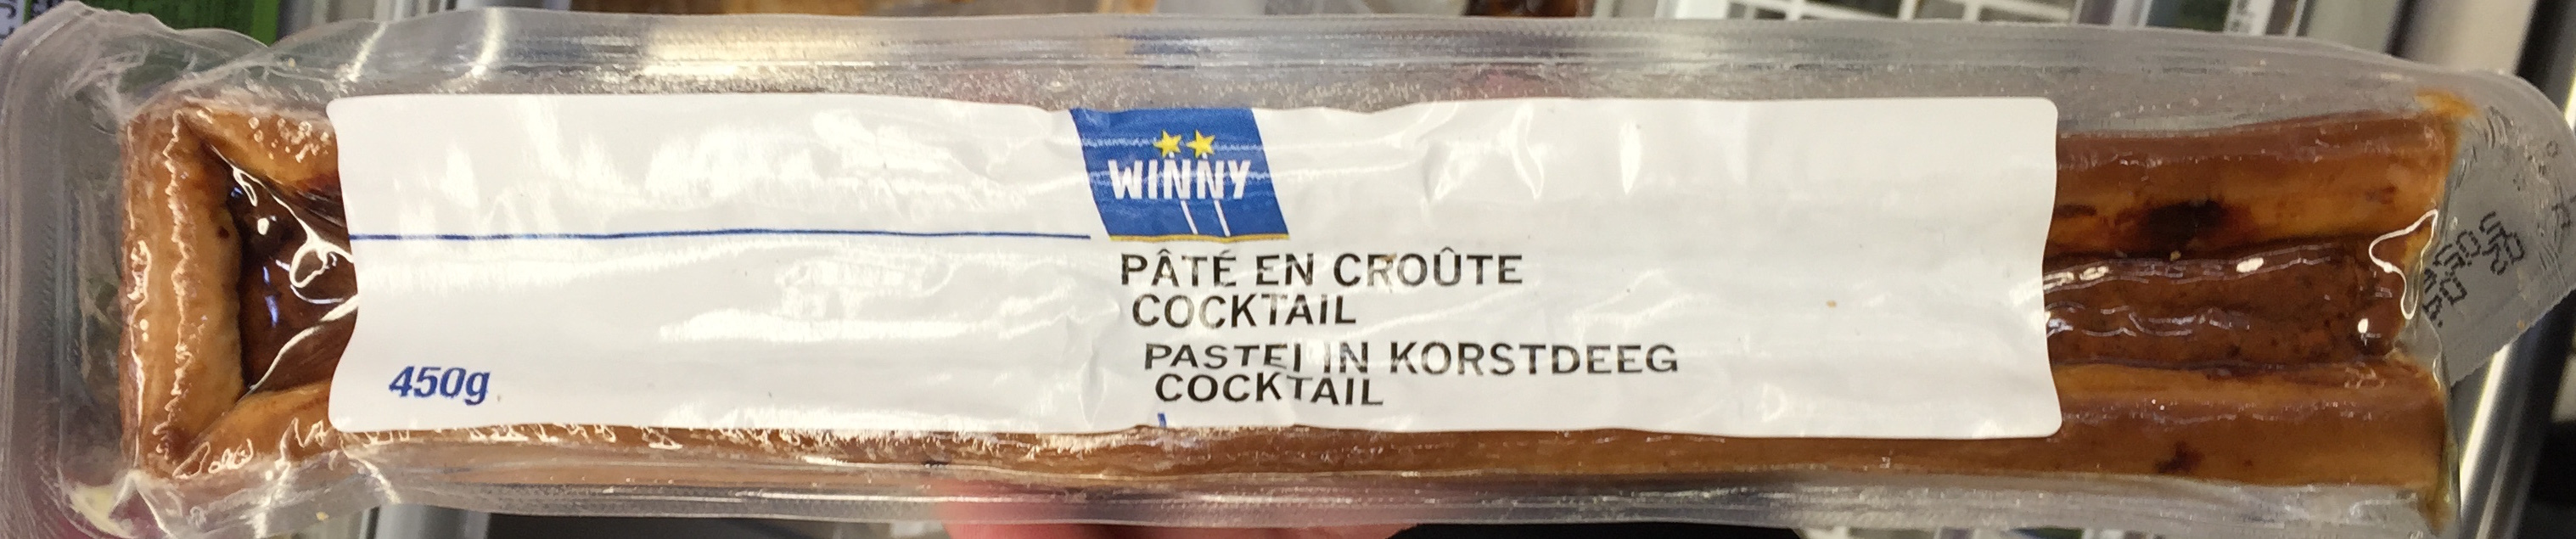 Pâté en croûte cocktail - Product